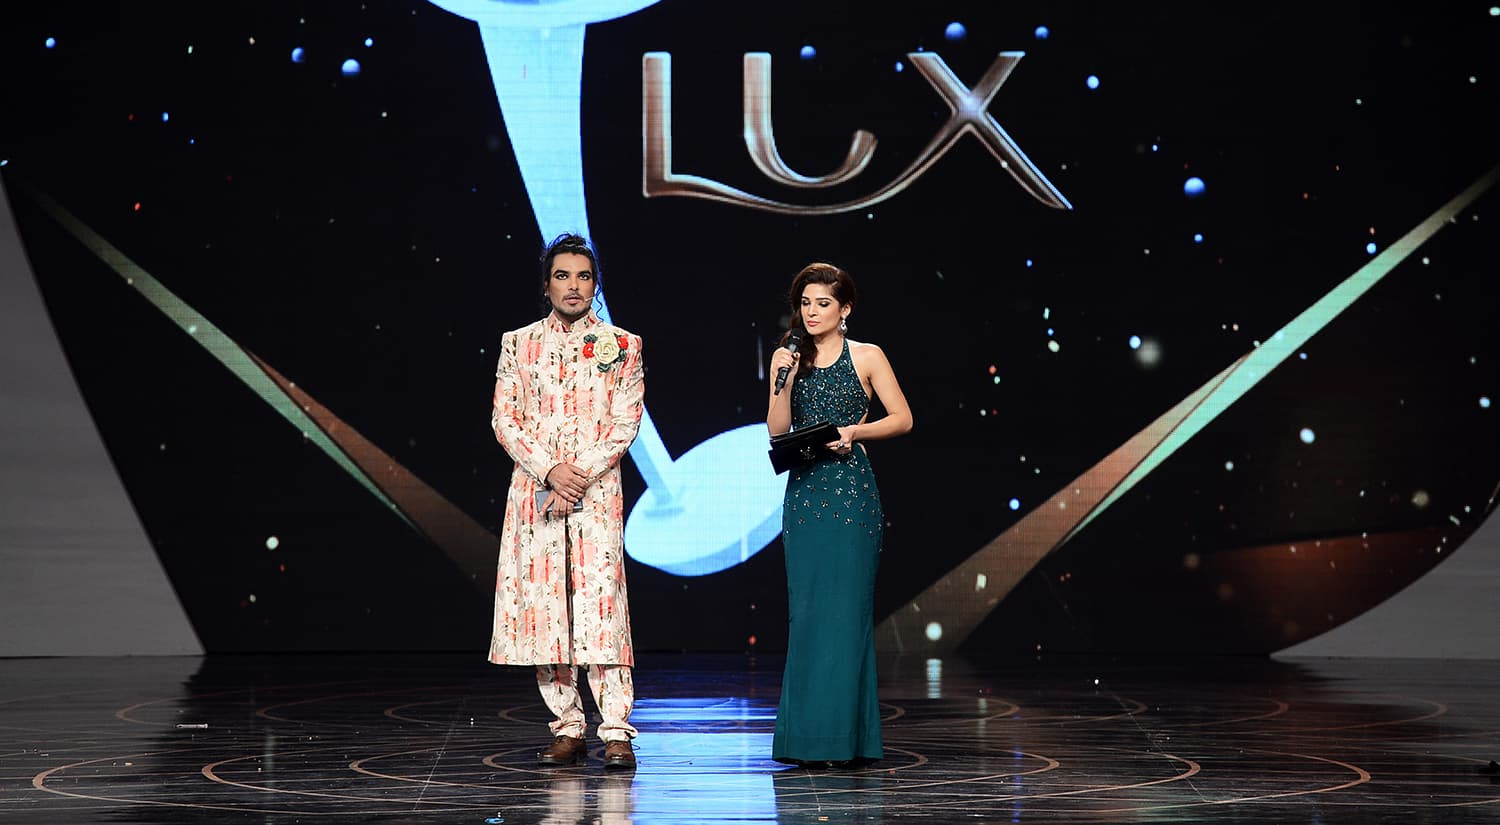 Yasir Hussain was a winner in his own right at the LSAs due to his killer hosting skills that everyone enjoyed – Publicity photo